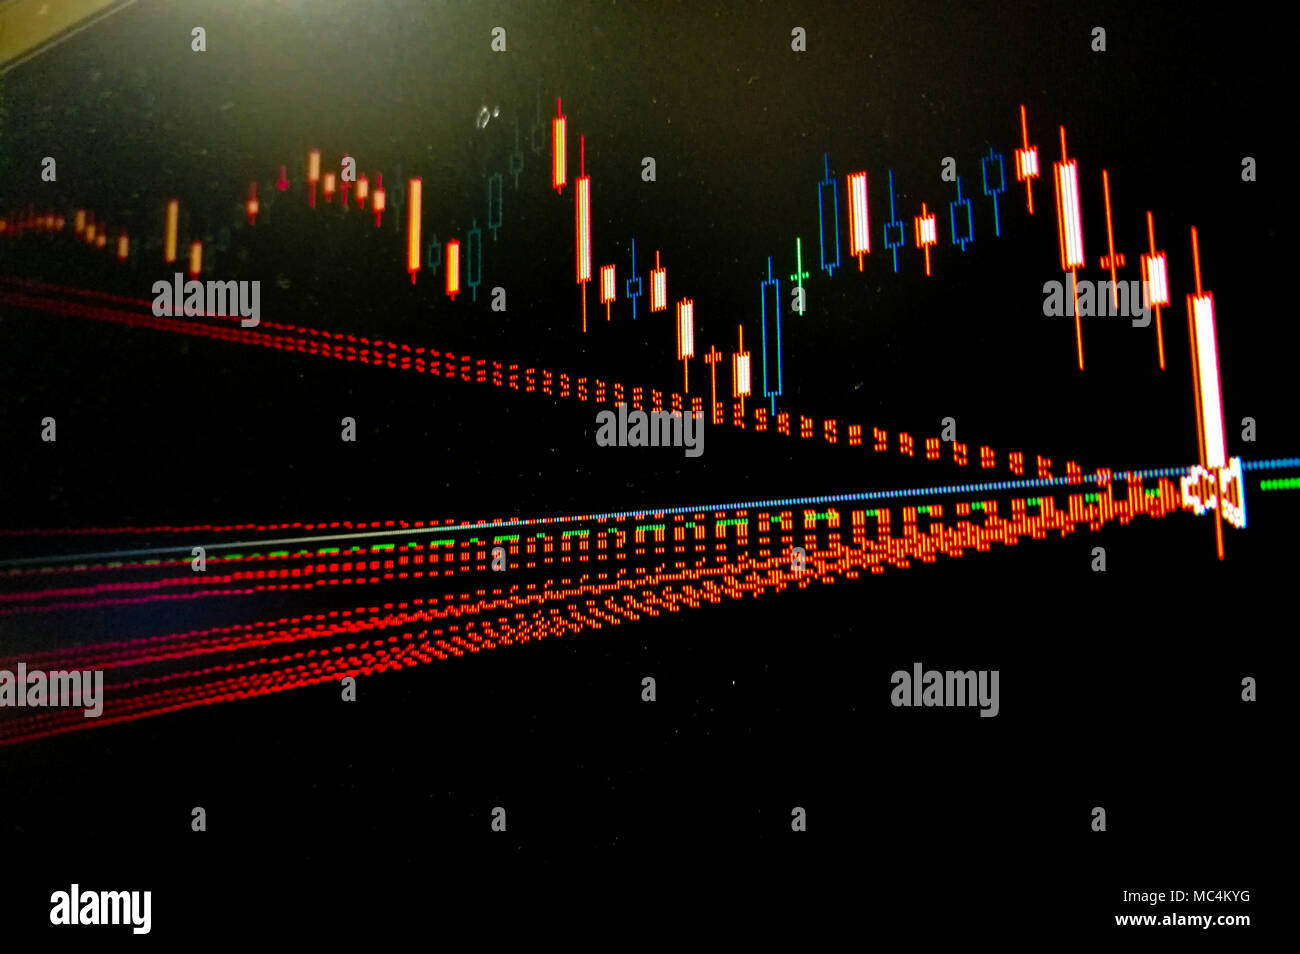 Forex trading screen with charts and graphs closing orders - Stock Image